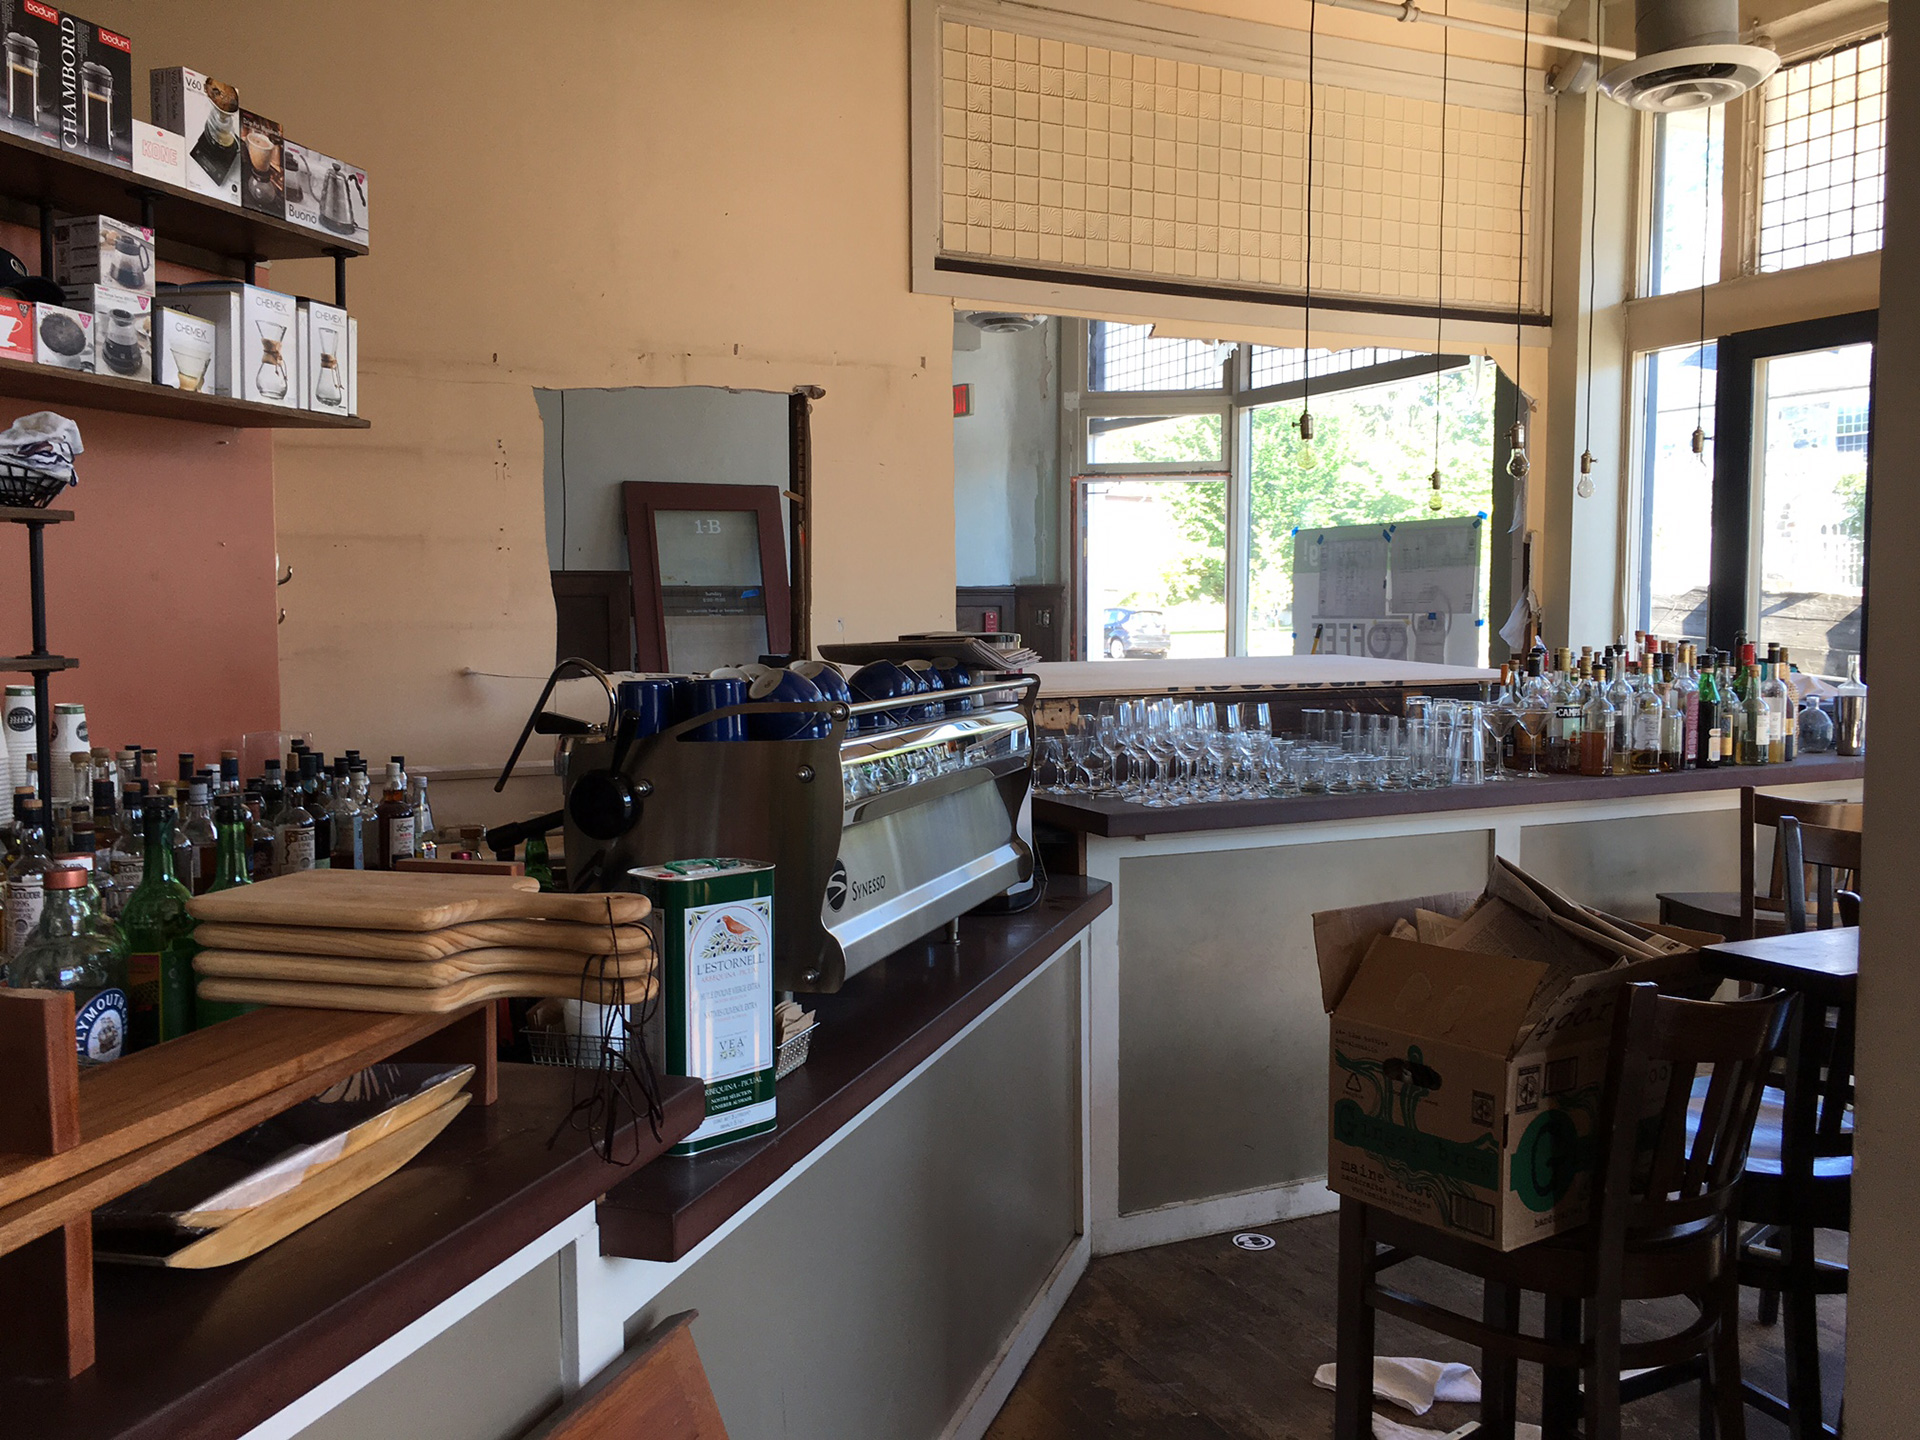 Build-outs Of Summer: Amherst Coffee In Amherst, Ma photo